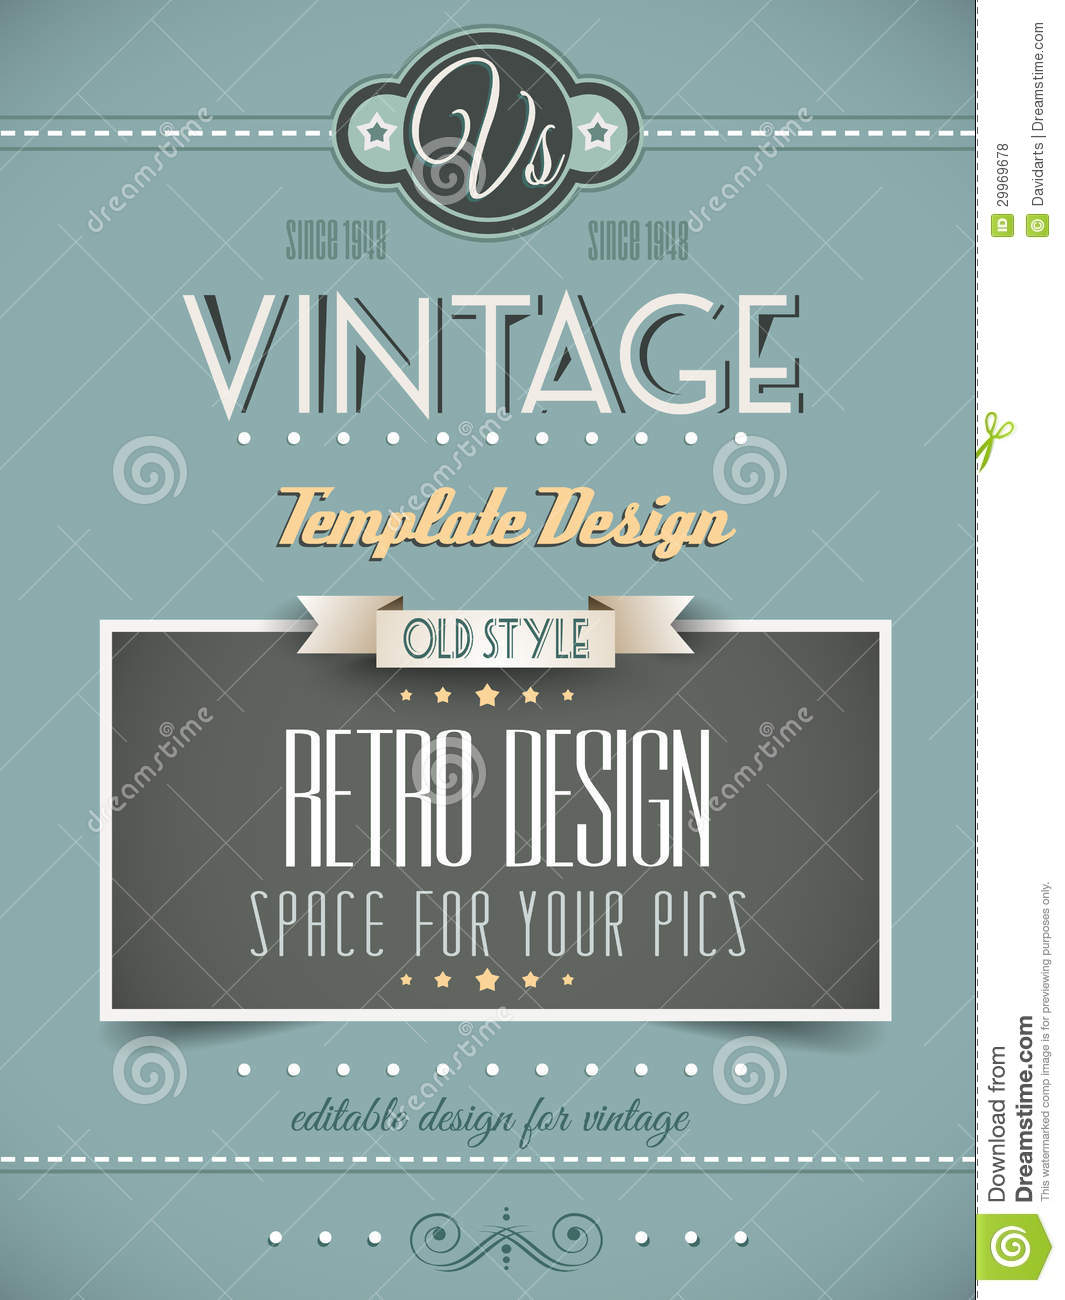 Vintage Style Book Cover : Vintage retro page or cover template royalty free stock